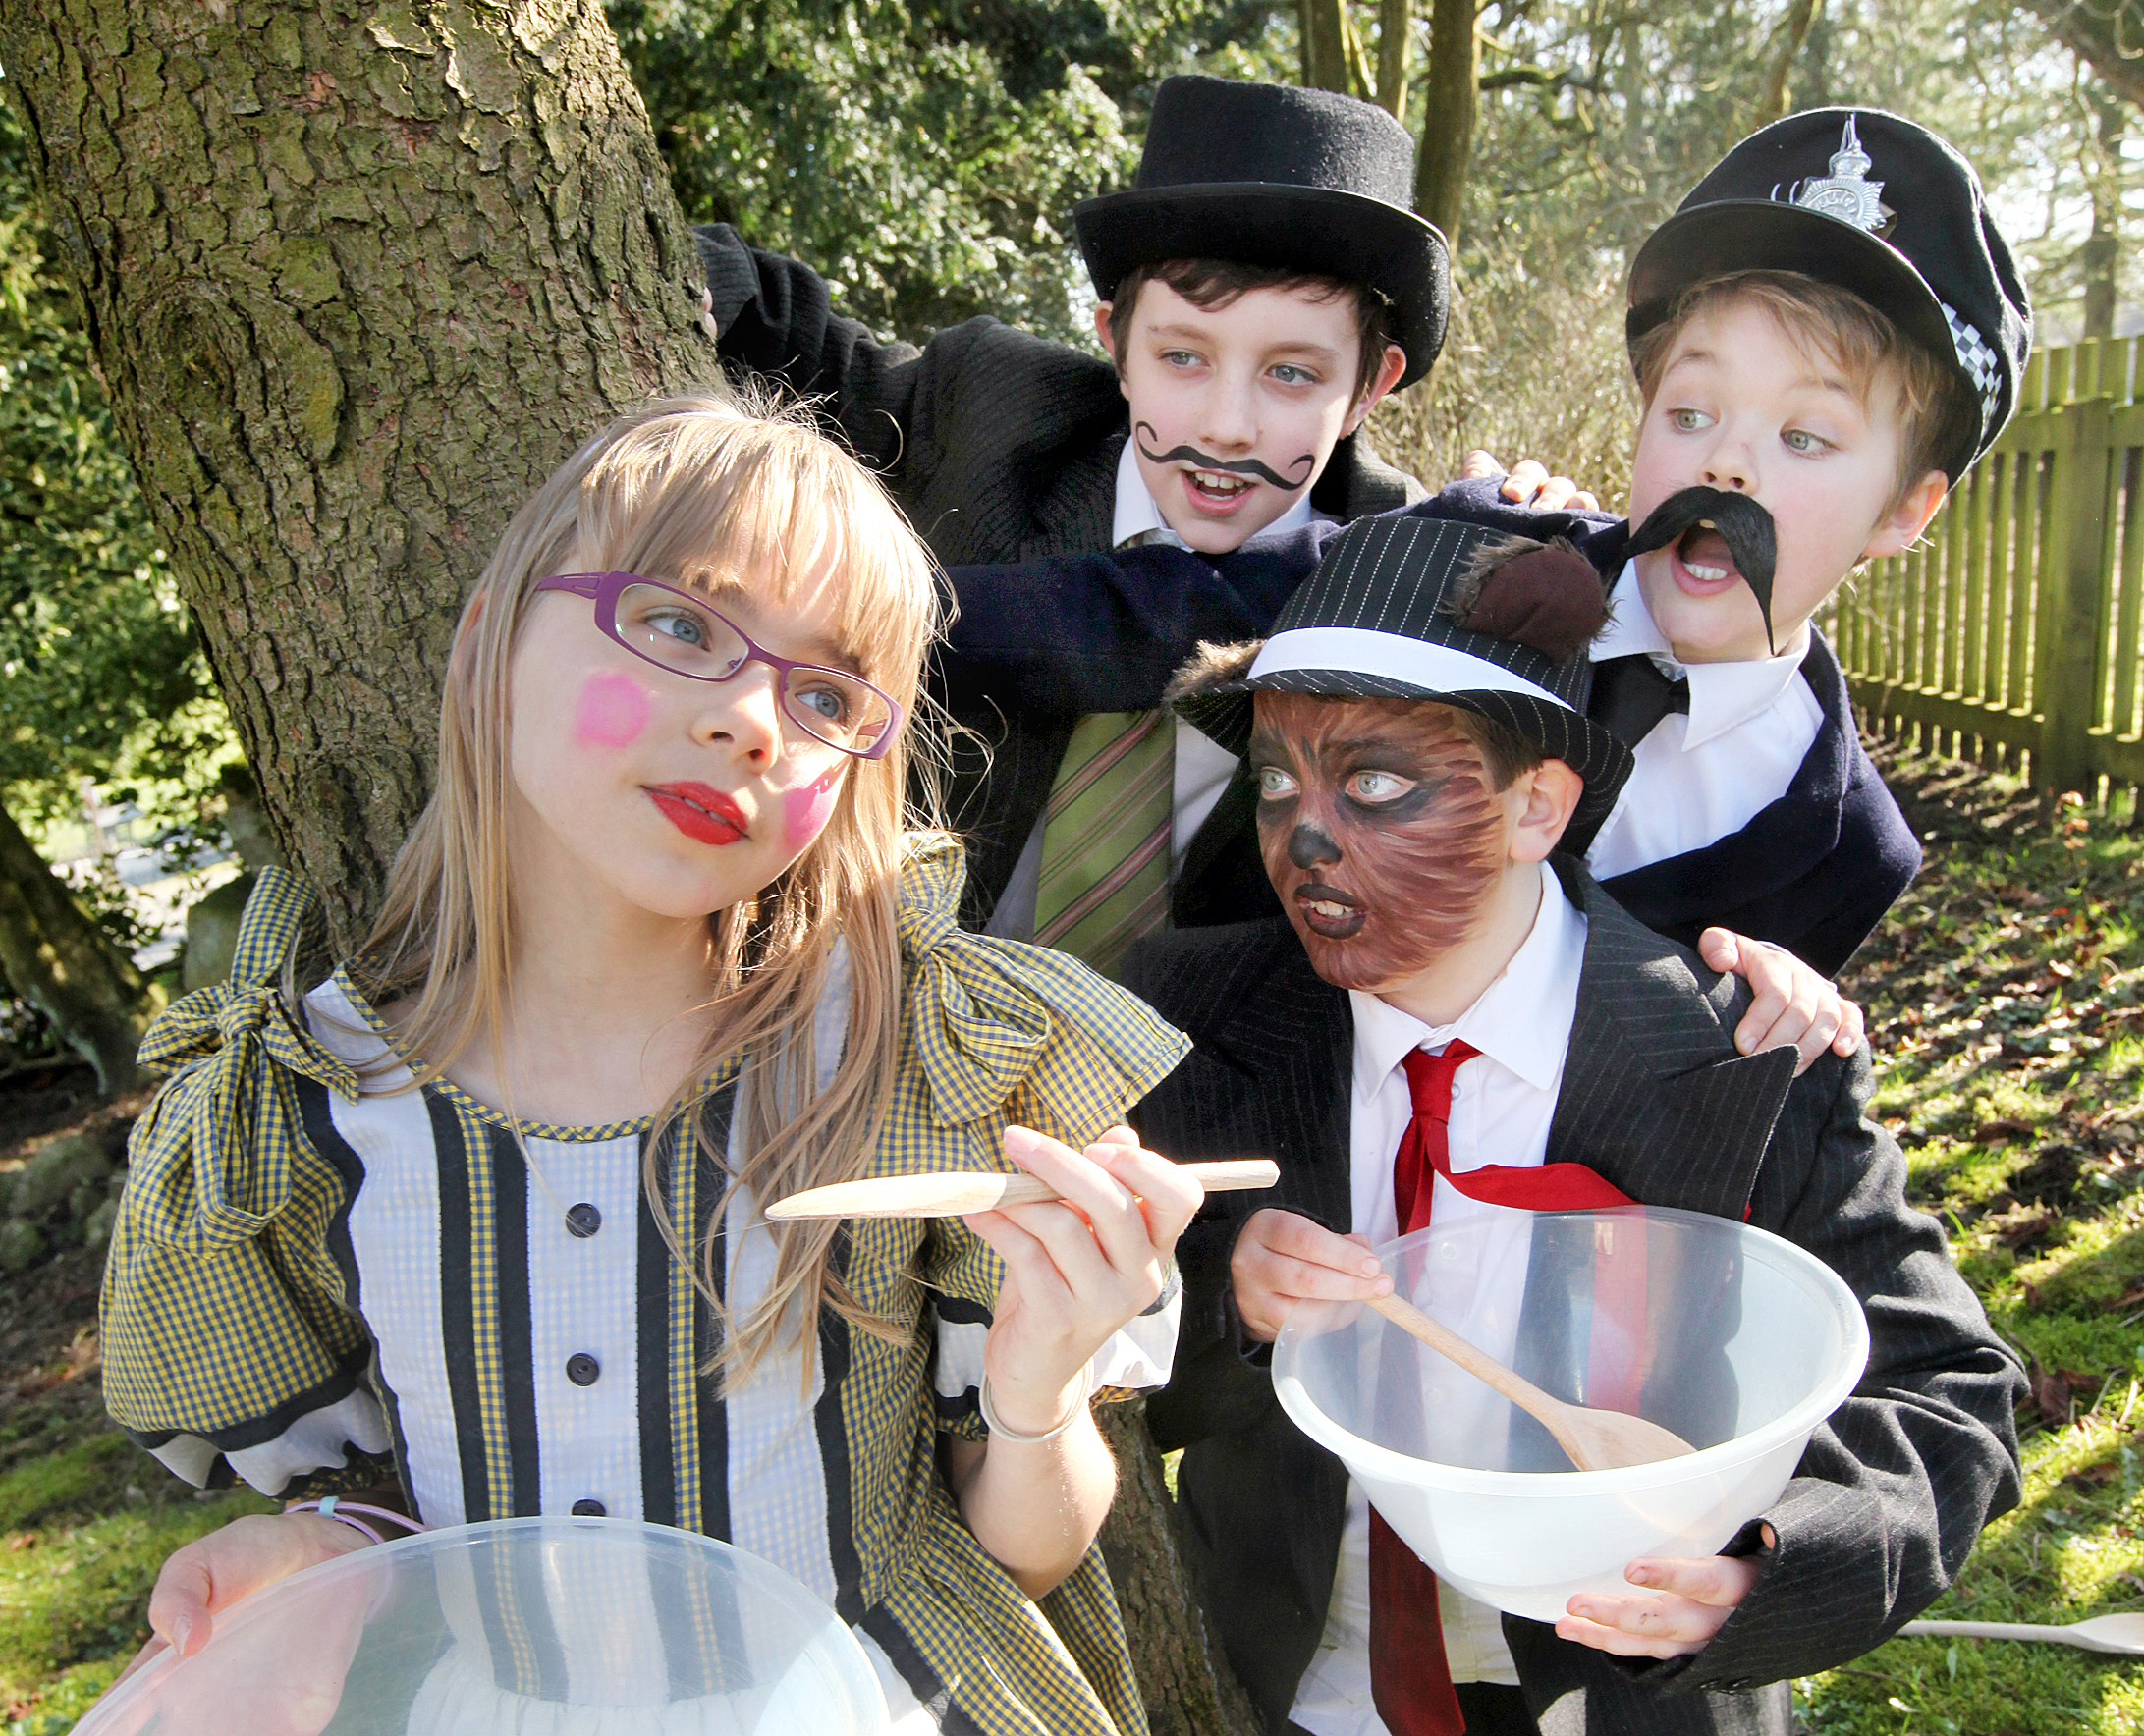 CEREAL THRILLER: Among the cast are Poppy Coultas, Elliot Taylor, Jack Harrison and Theodore Jackson